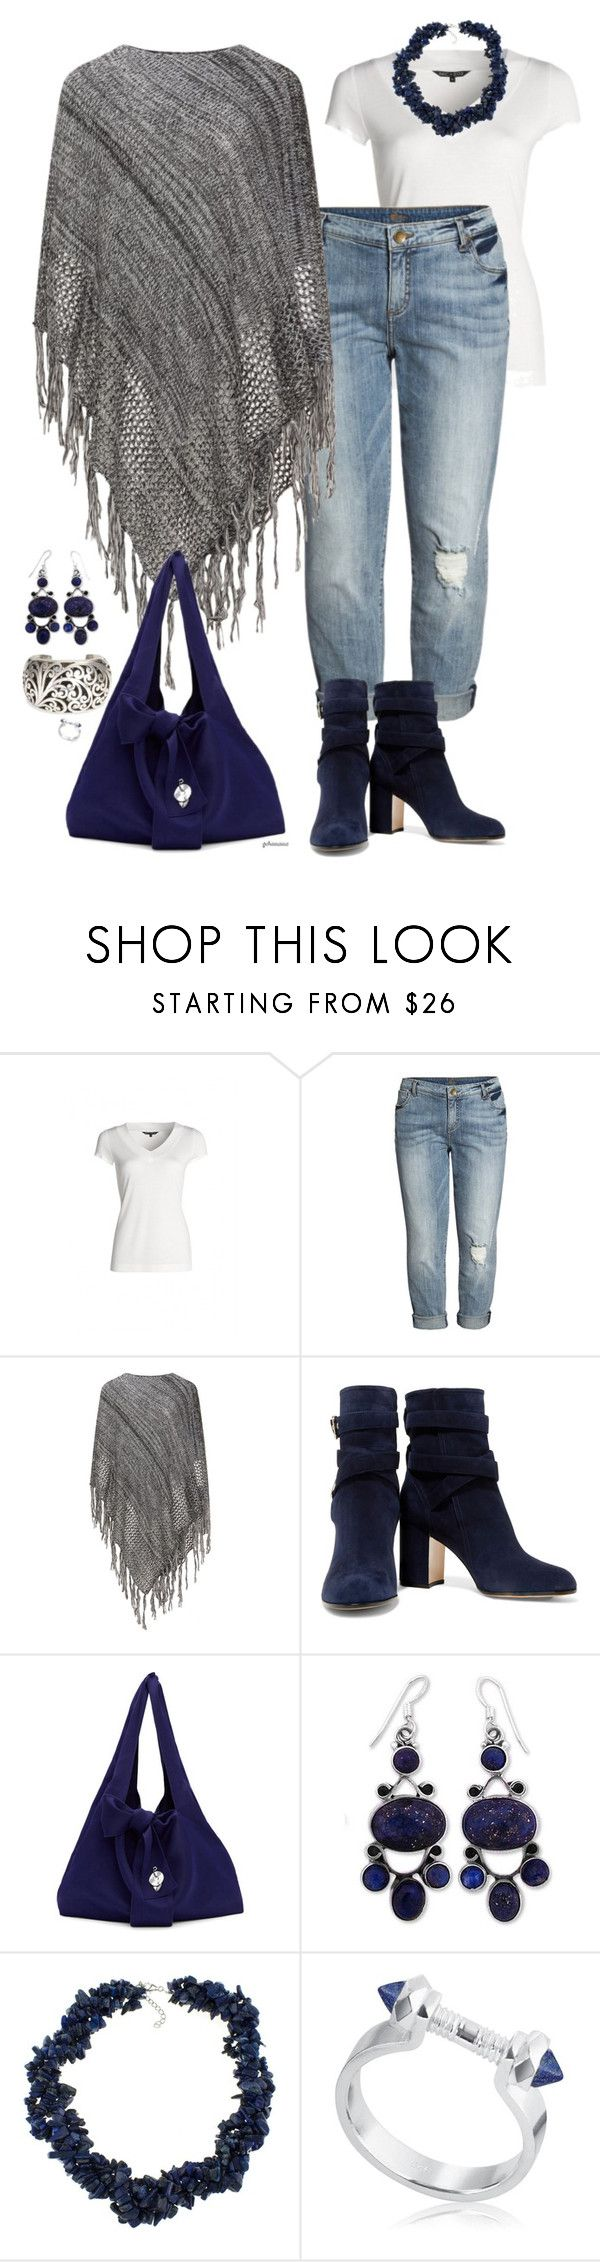 """Lapis blue- plus size"" by gchamama on Polyvore featuring NIC+ZOE, KUT from the Kloth, Gianvito Rossi, 3.1 Phillip Lim, NOVICA, Lois Hill, Pearlz Ocean and Edge of Ember"